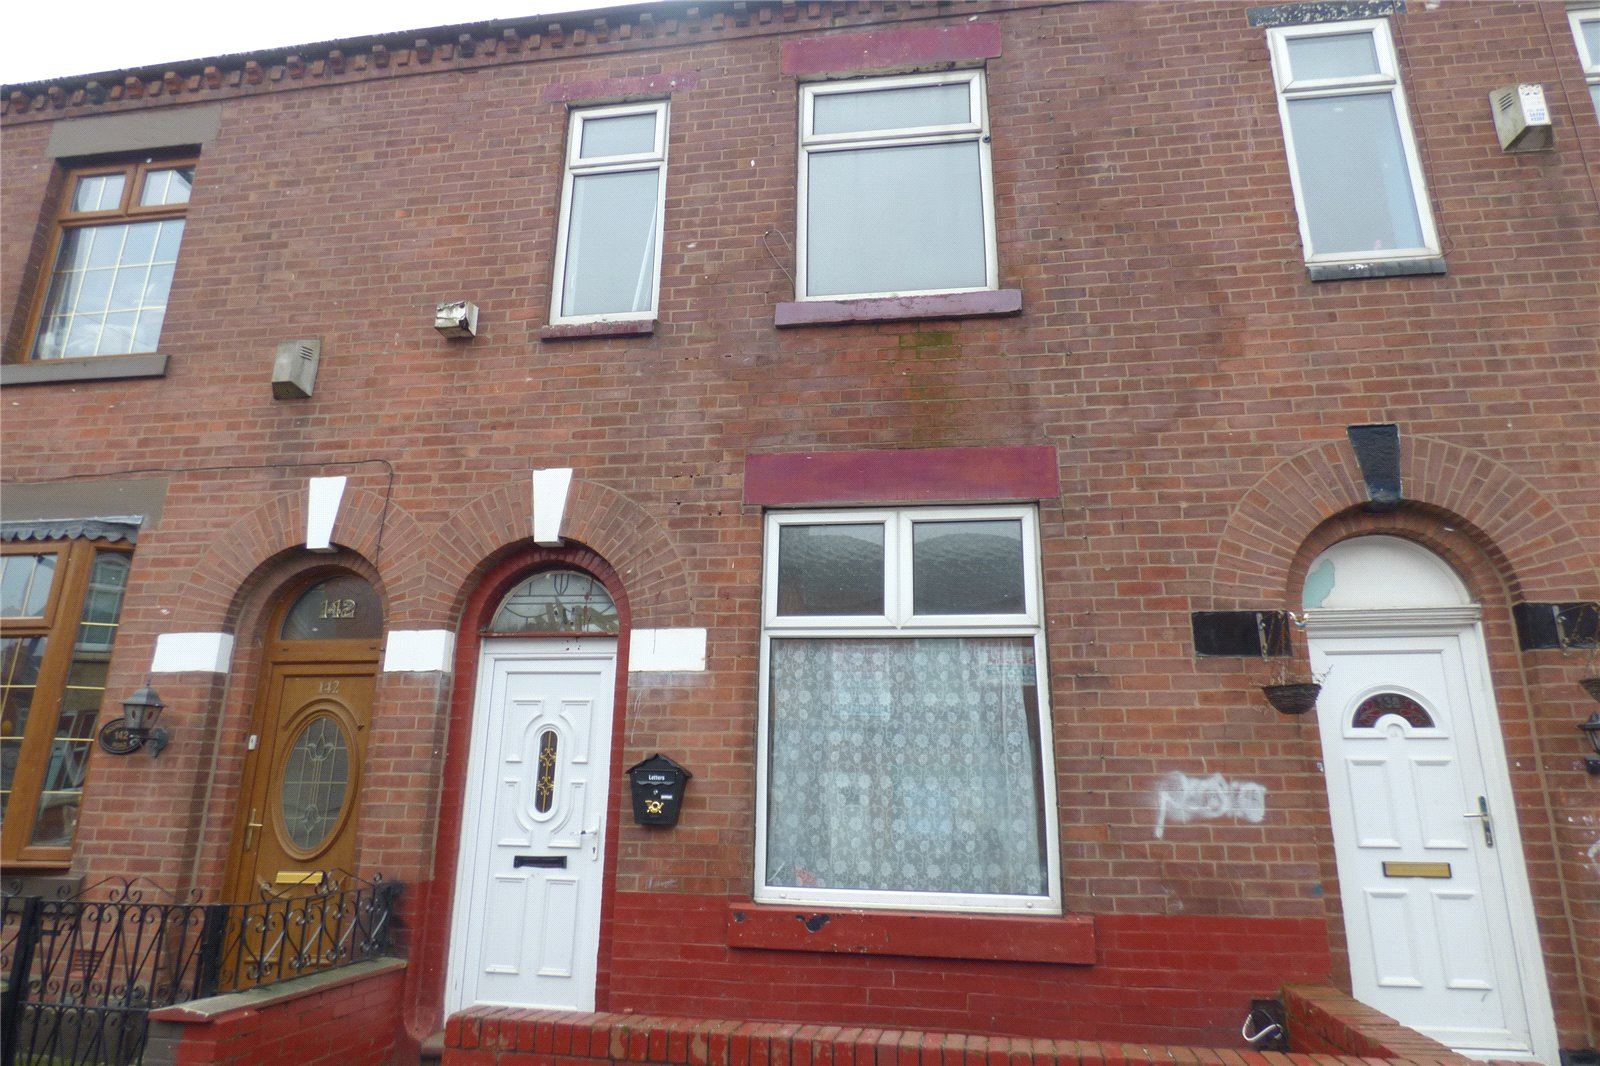 4 Bedrooms Terraced House for sale in Roundthorn Road, Roundthorn, Oldham, Greater Manchester, OL4